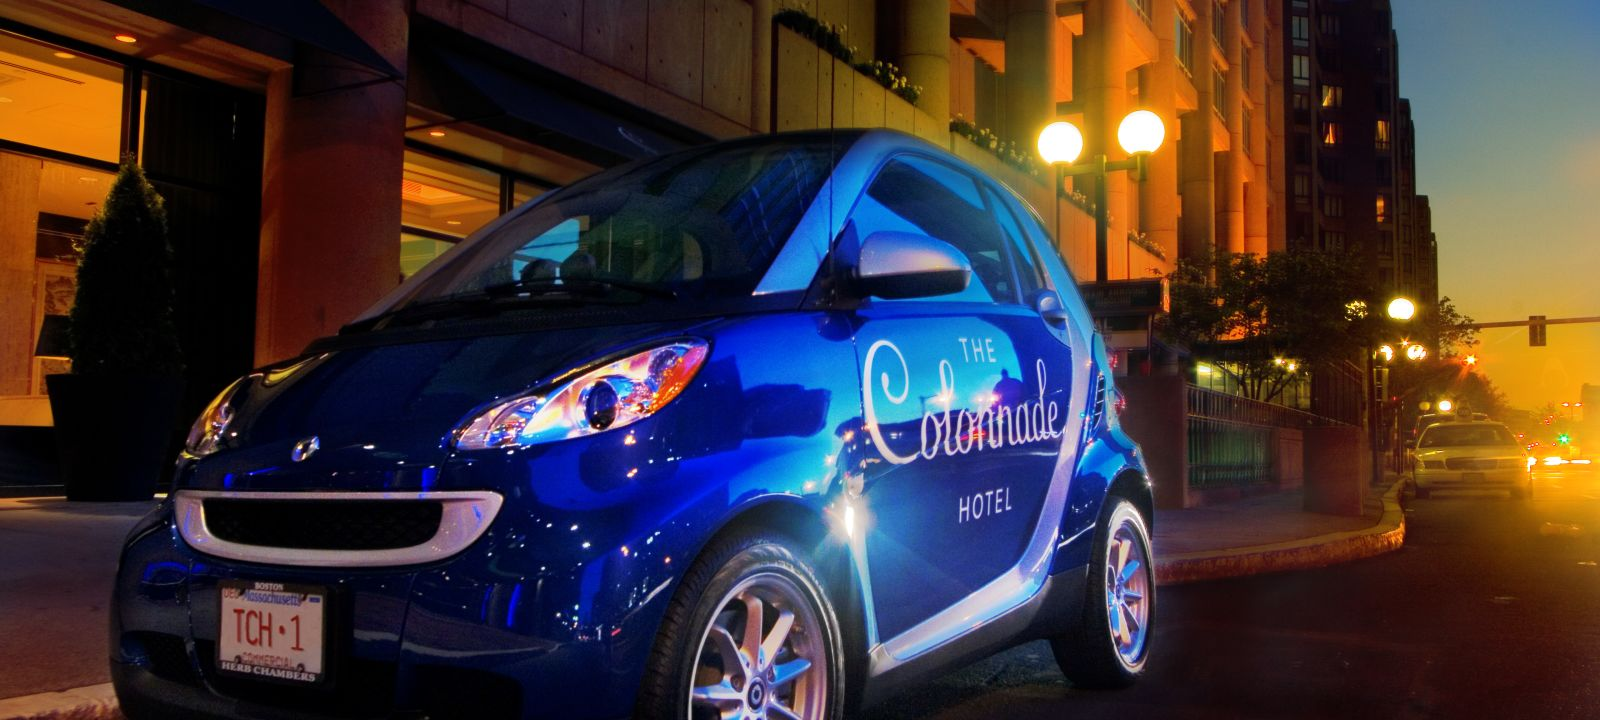 The Colonnade Hotel smart car